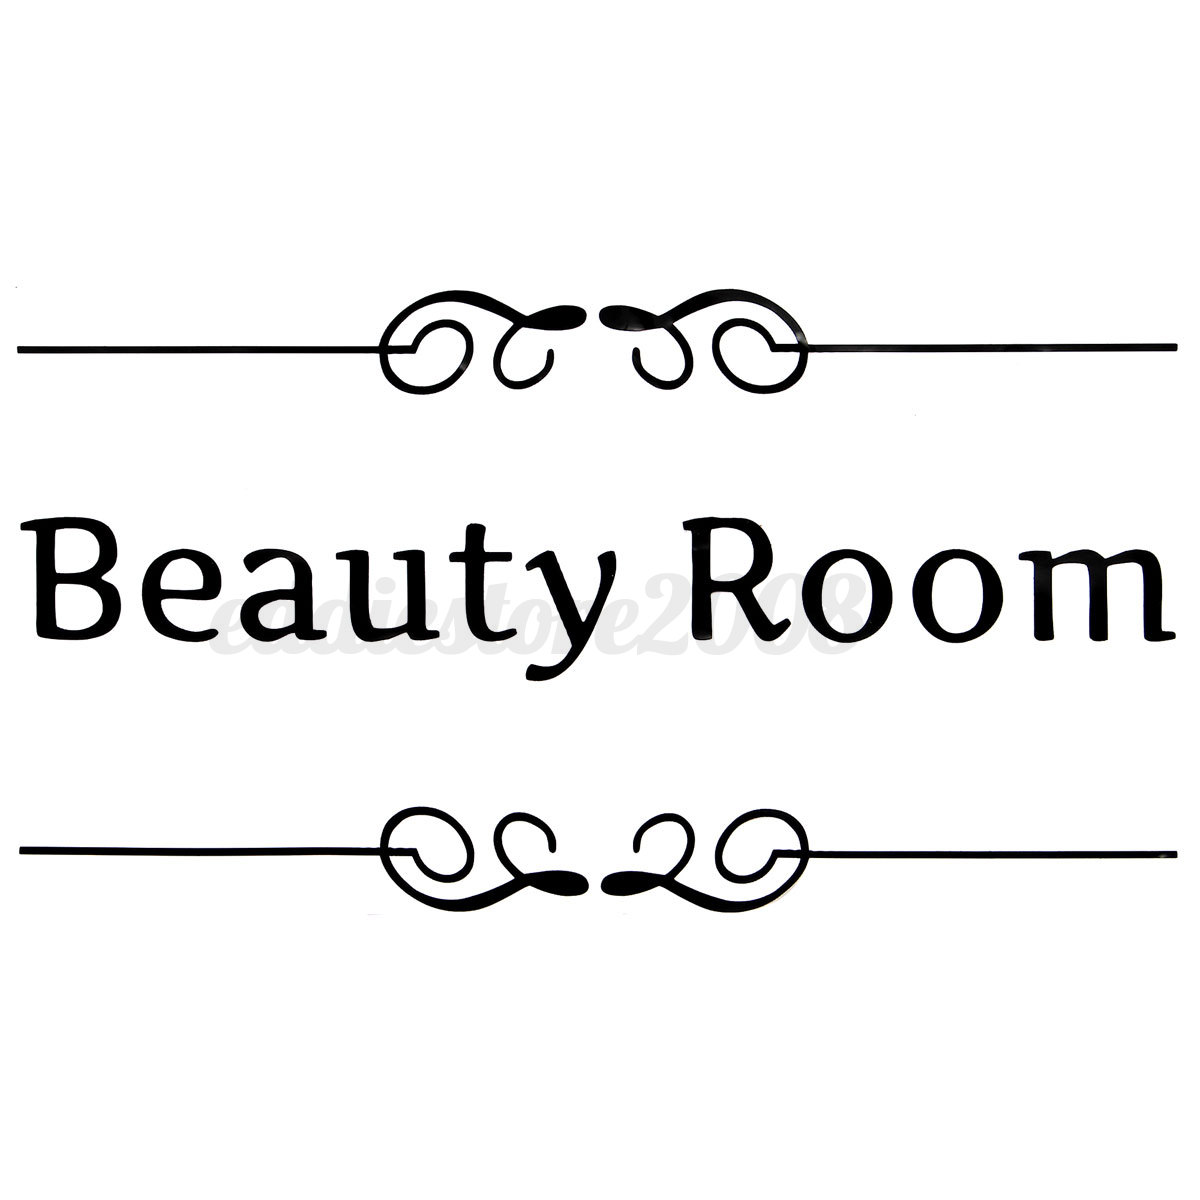 Bathroom sign for home - Bathroom Toilet Laundry Room Wall Stickers Art Decal